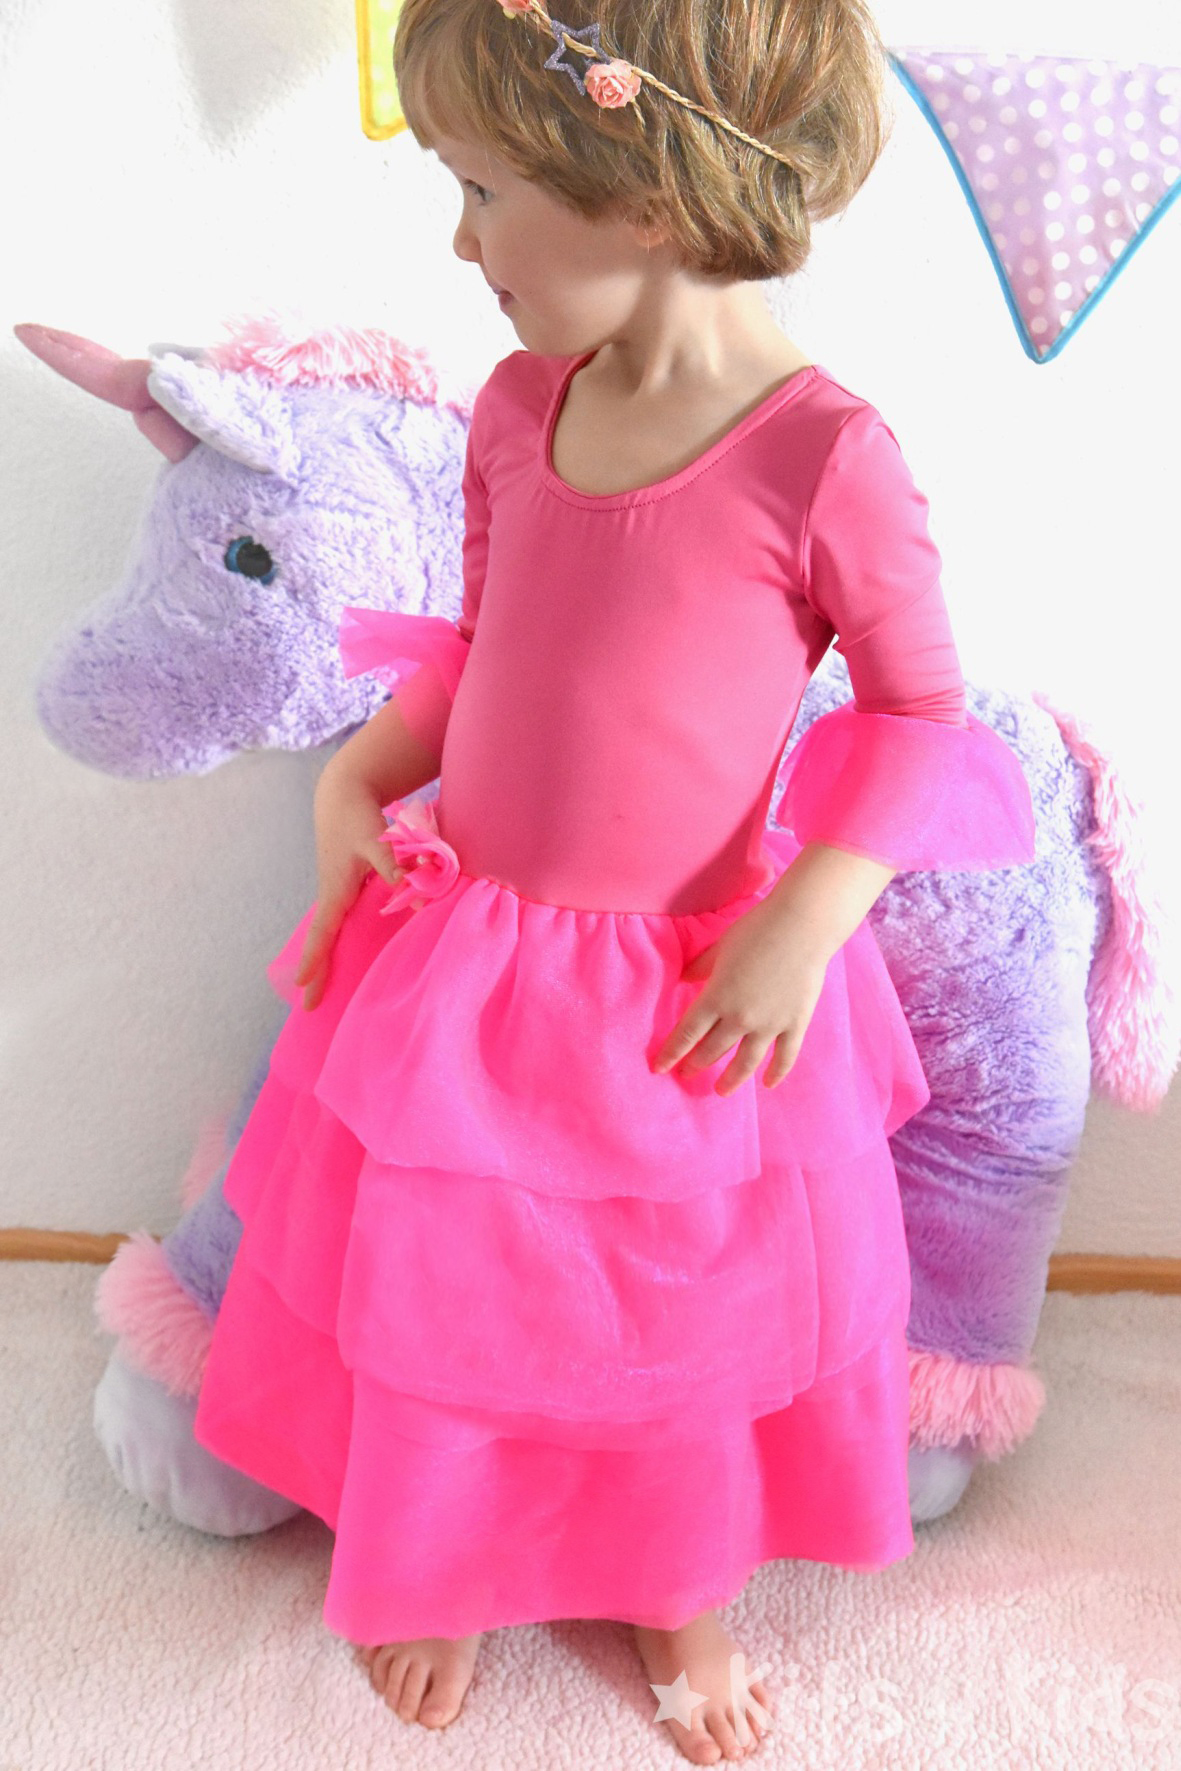 kits4kids: Prinzessin-Kleid in neonpink